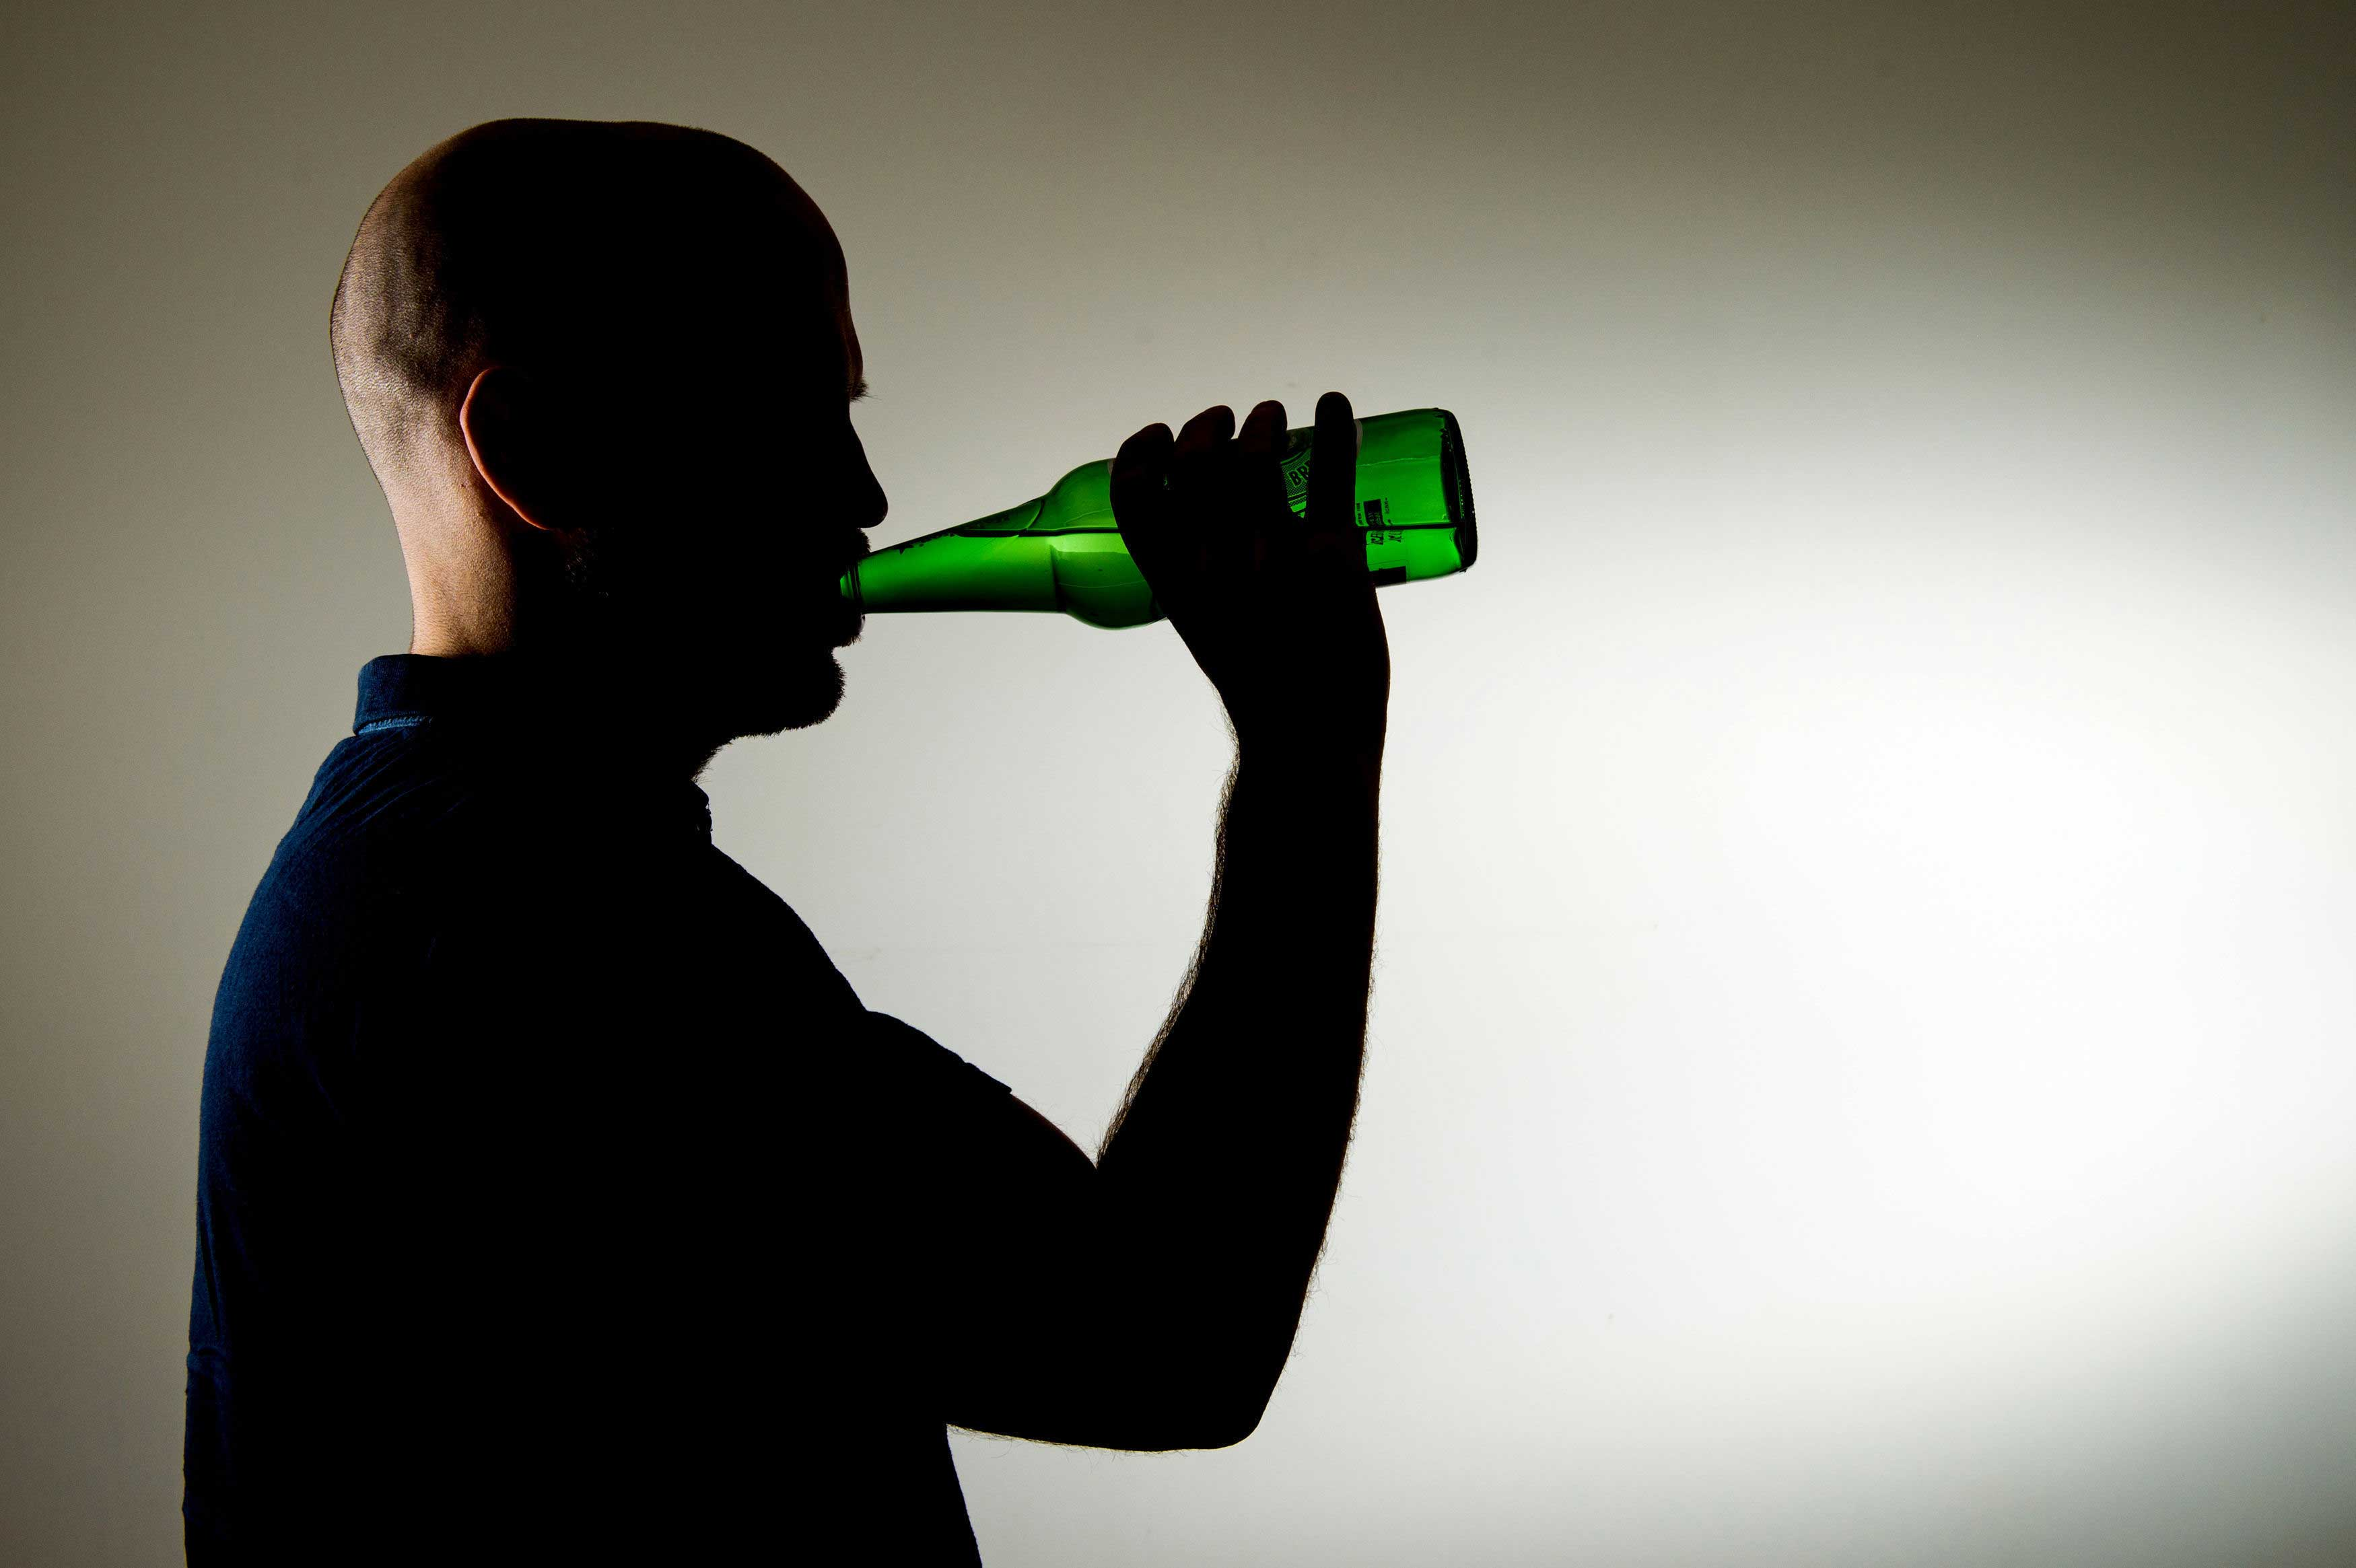 Alcohol guidelines in many countries may not be safe